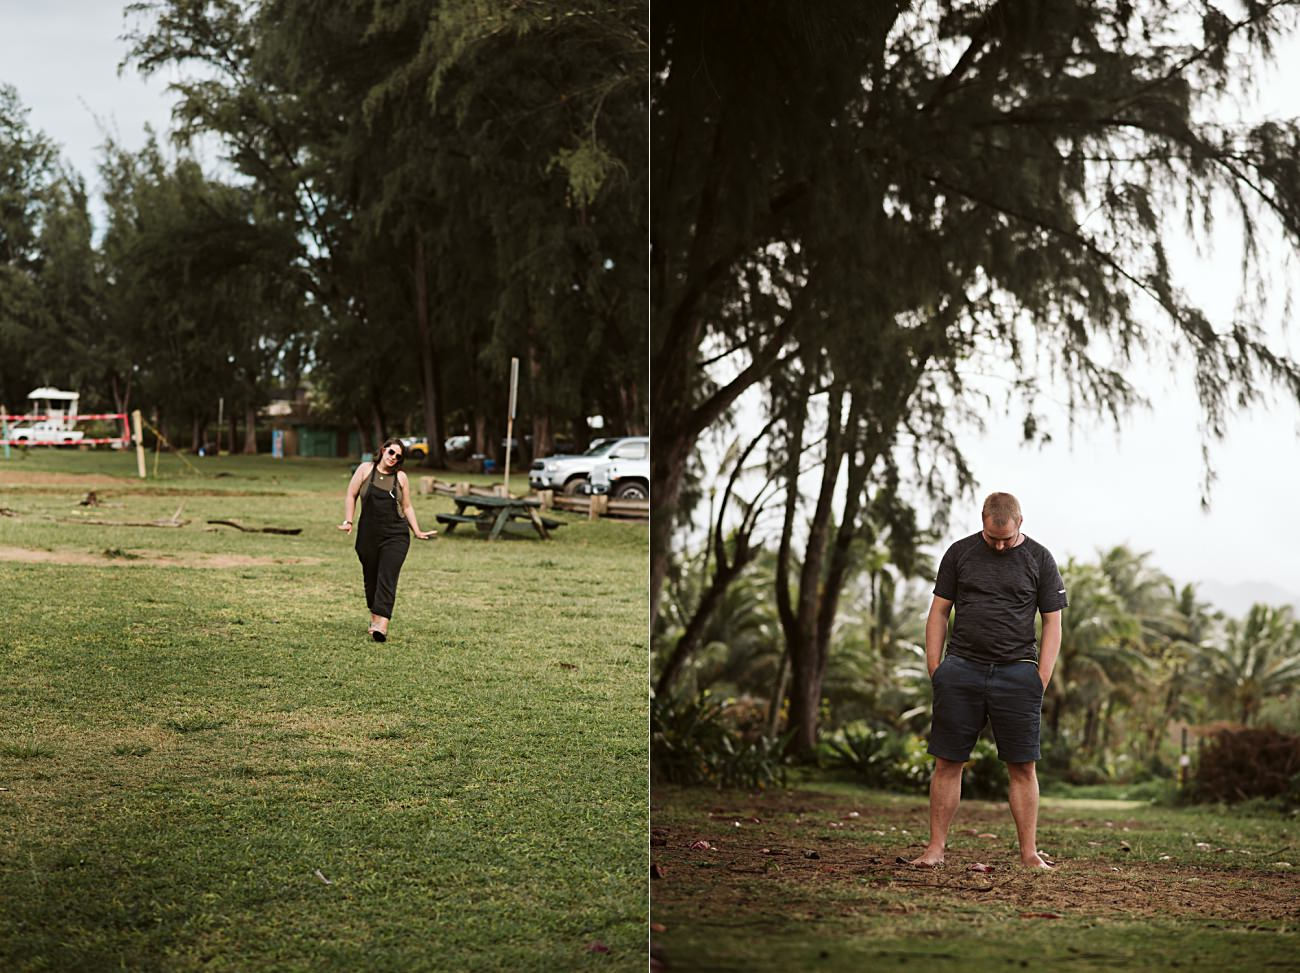 best camping in kauai, camping in hawaii, car camping hawaii, beach camping, van life - Our Madison LIfe (c) Natural Intuition Photography